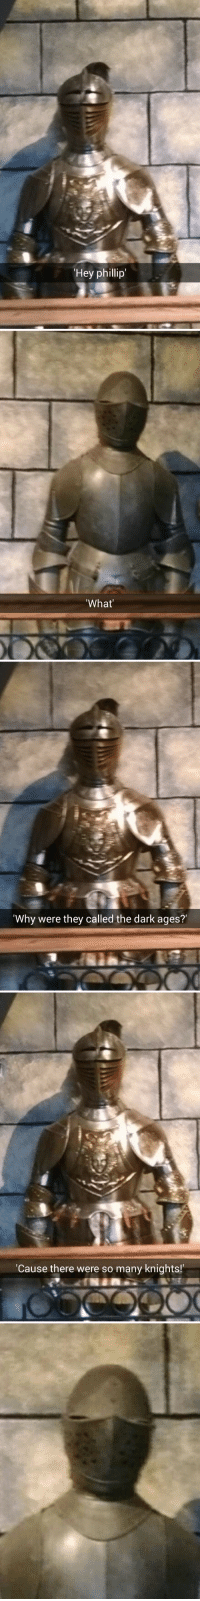 history-jokes:  dickmasterson:  Phillip doesn't even have a face and he looks done.  I will never stop being proud of myself for this post. : Hey phillip   What   'Why were they called the dark ages?   Cause there were so many knights! history-jokes:  dickmasterson:  Phillip doesn't even have a face and he looks done.  I will never stop being proud of myself for this post.